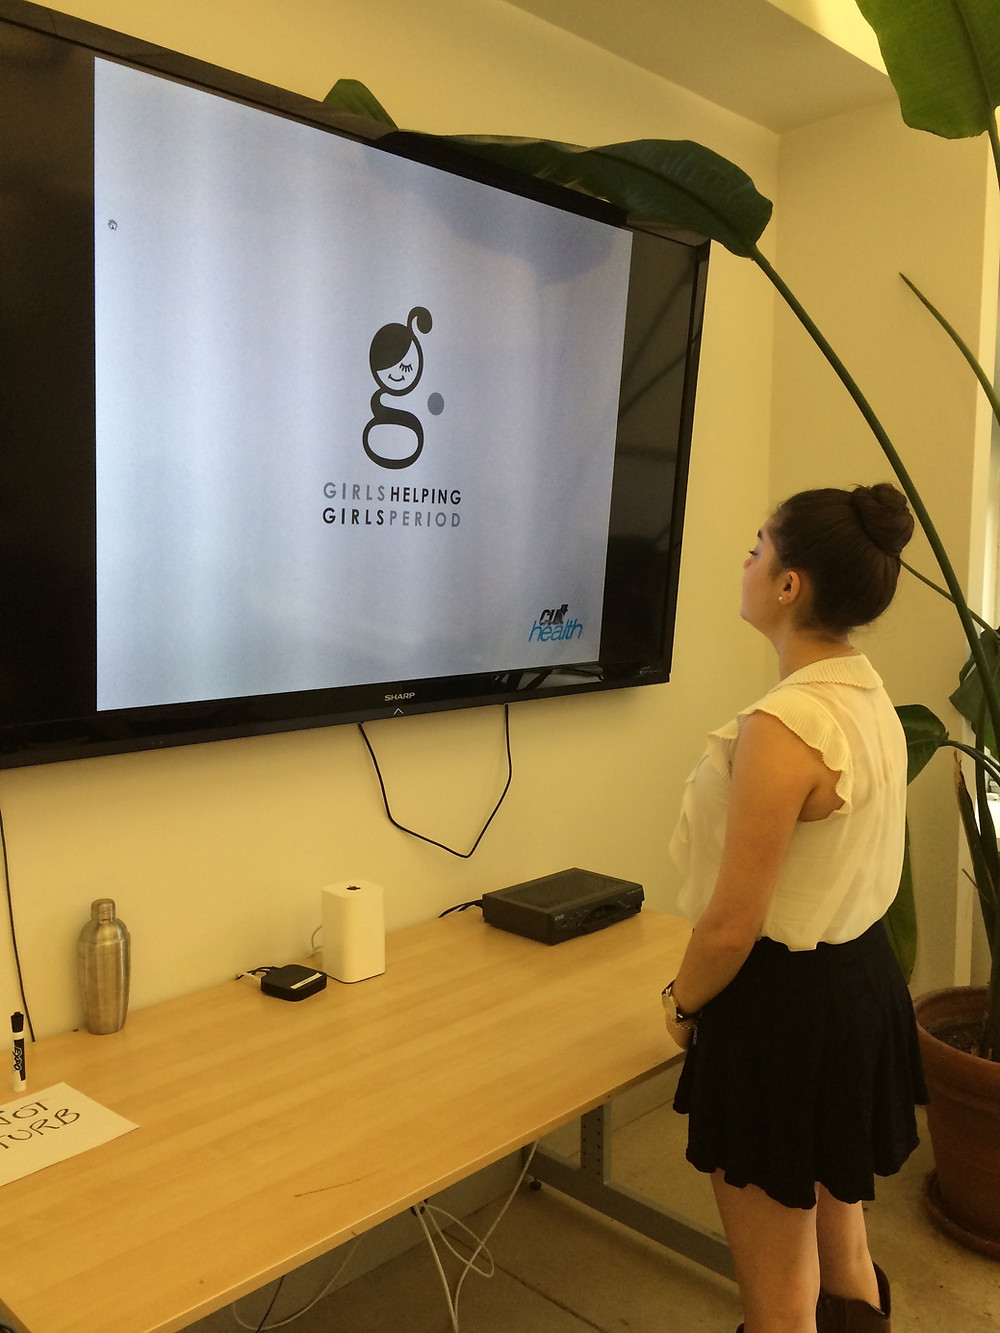 Emma looks at a screen with the new logo for Girls Helping Girls. Period.